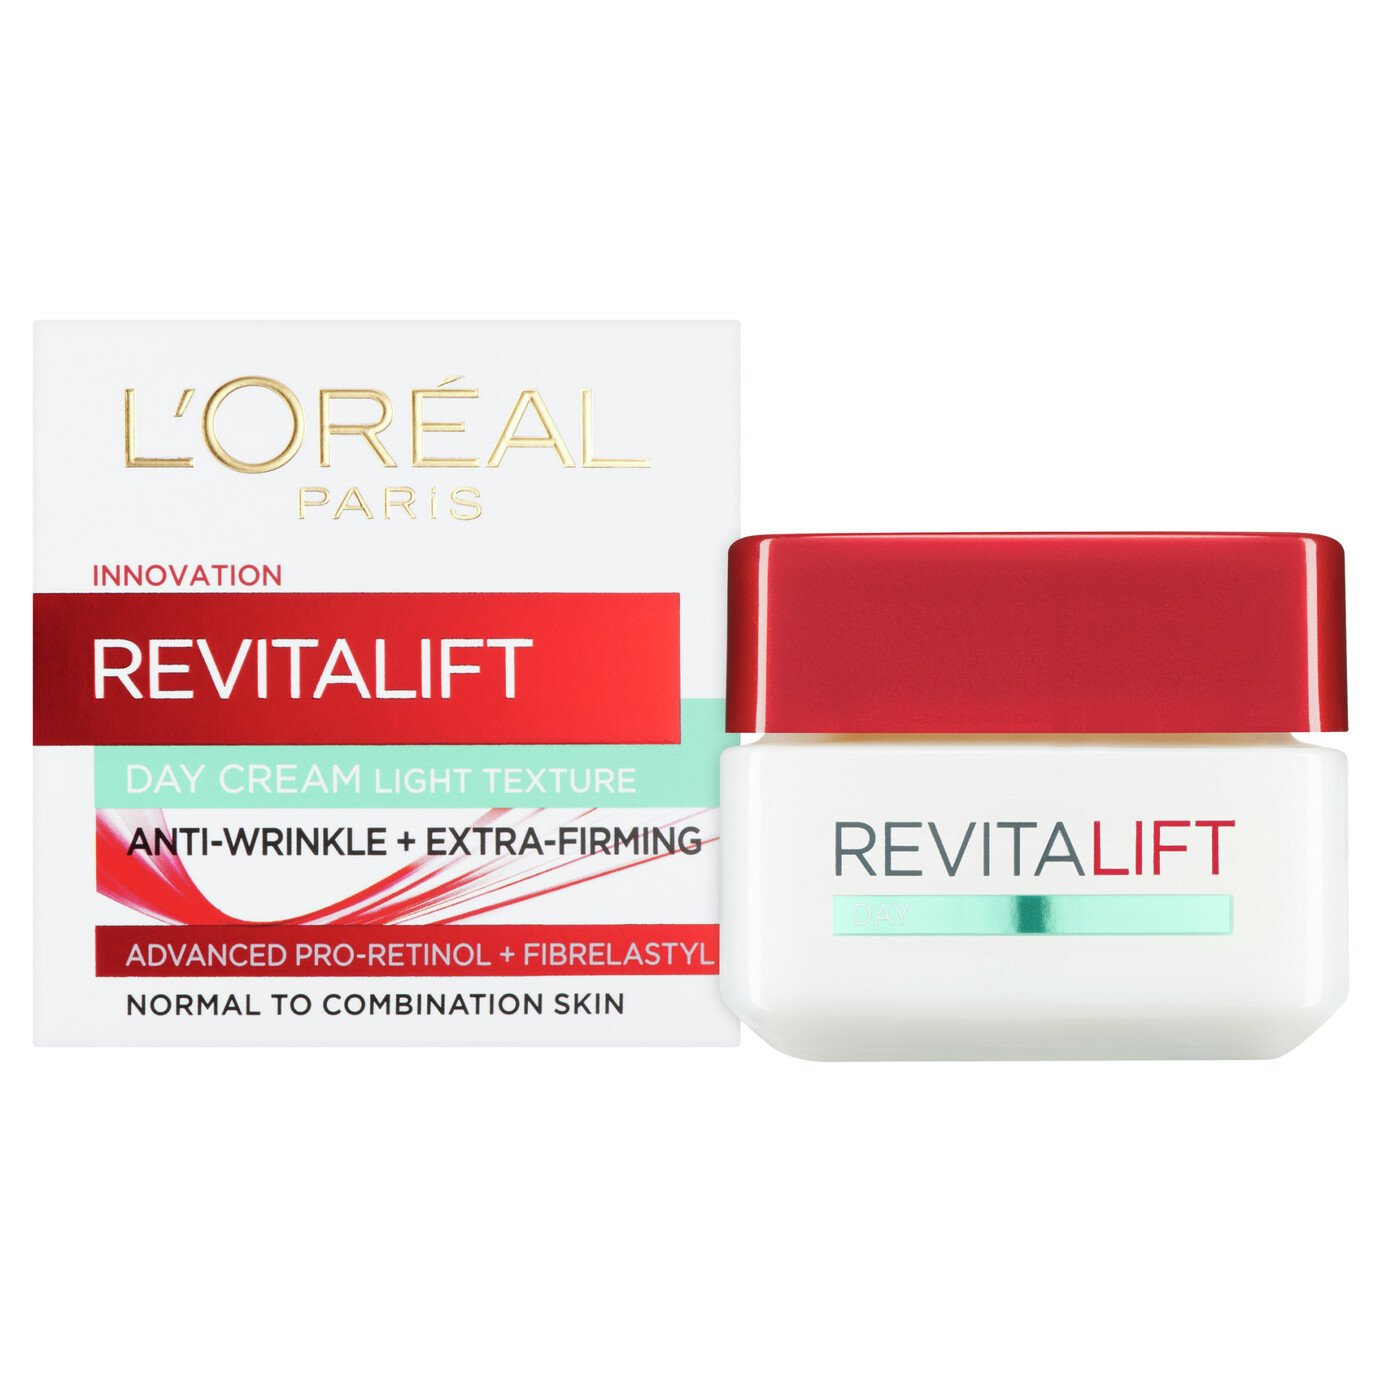 L'Oreal Paris Skin De Re Mattifying Day Cream - 50ml